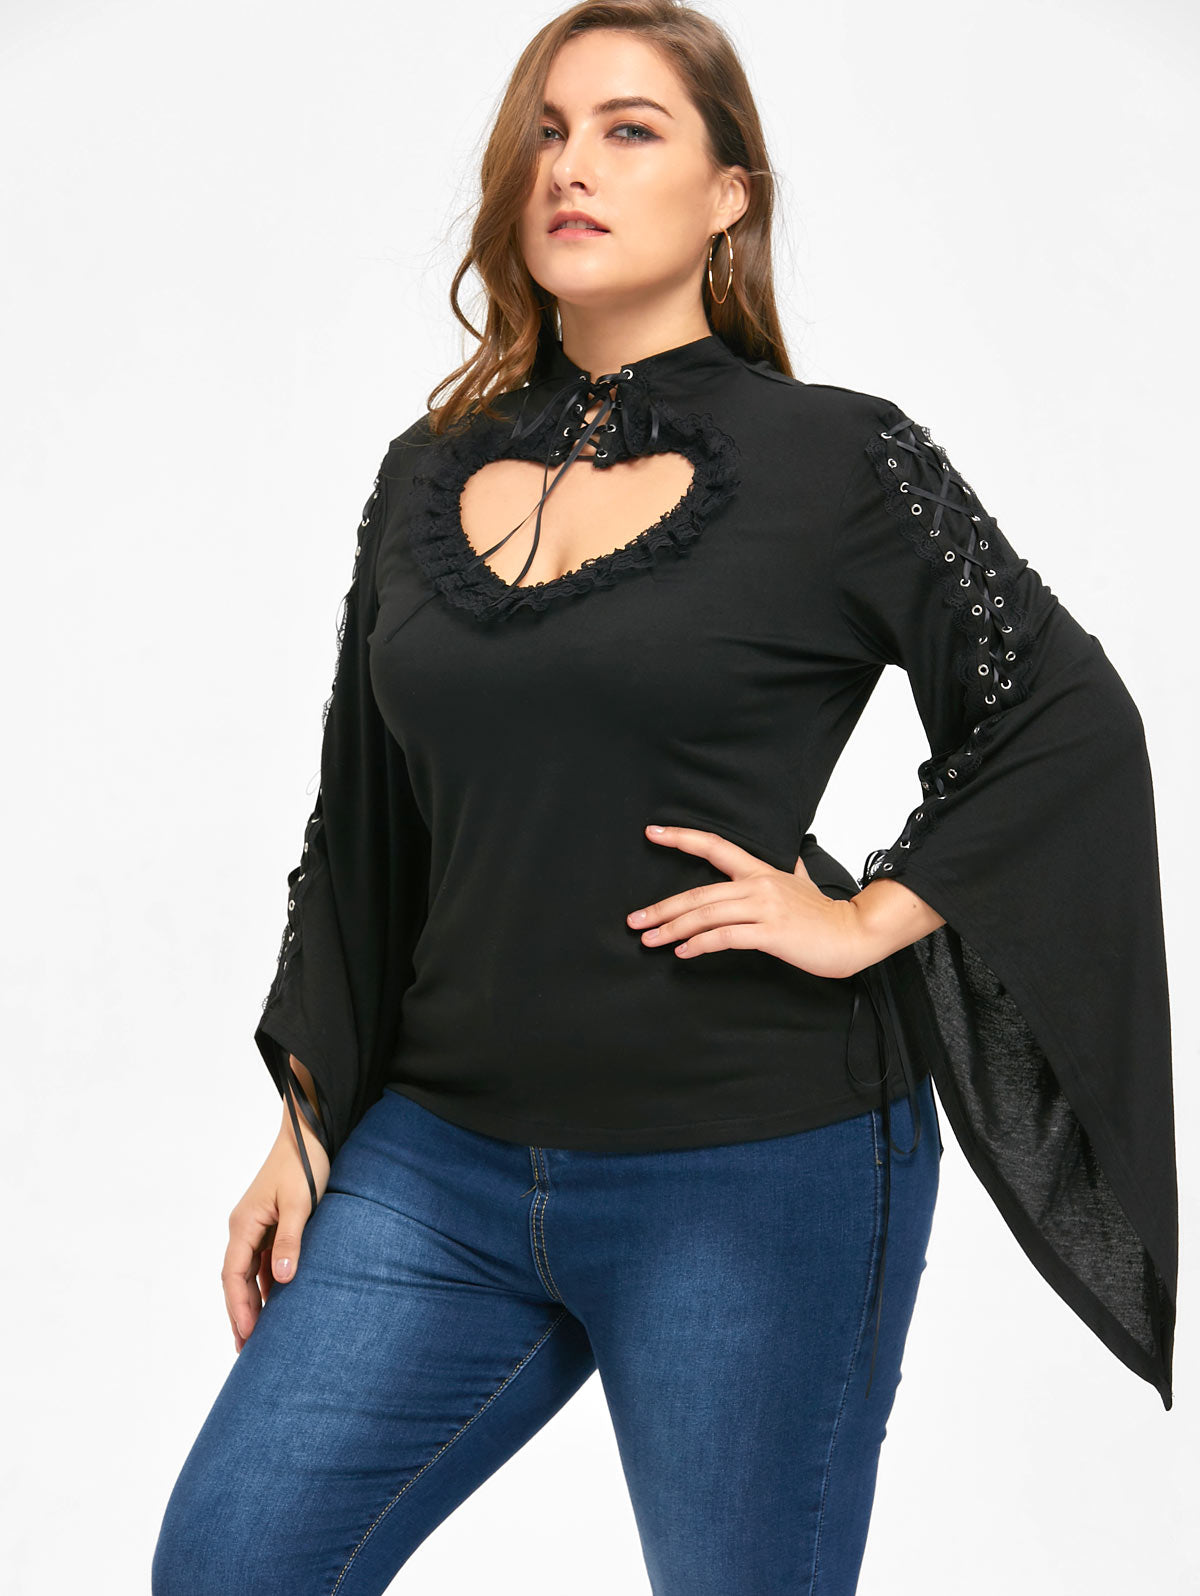 Gamiss Novelty Plus Size Flounced Lace Up Keyhole Top Gothic Women Autumn Winter Shirts Fashion Casual